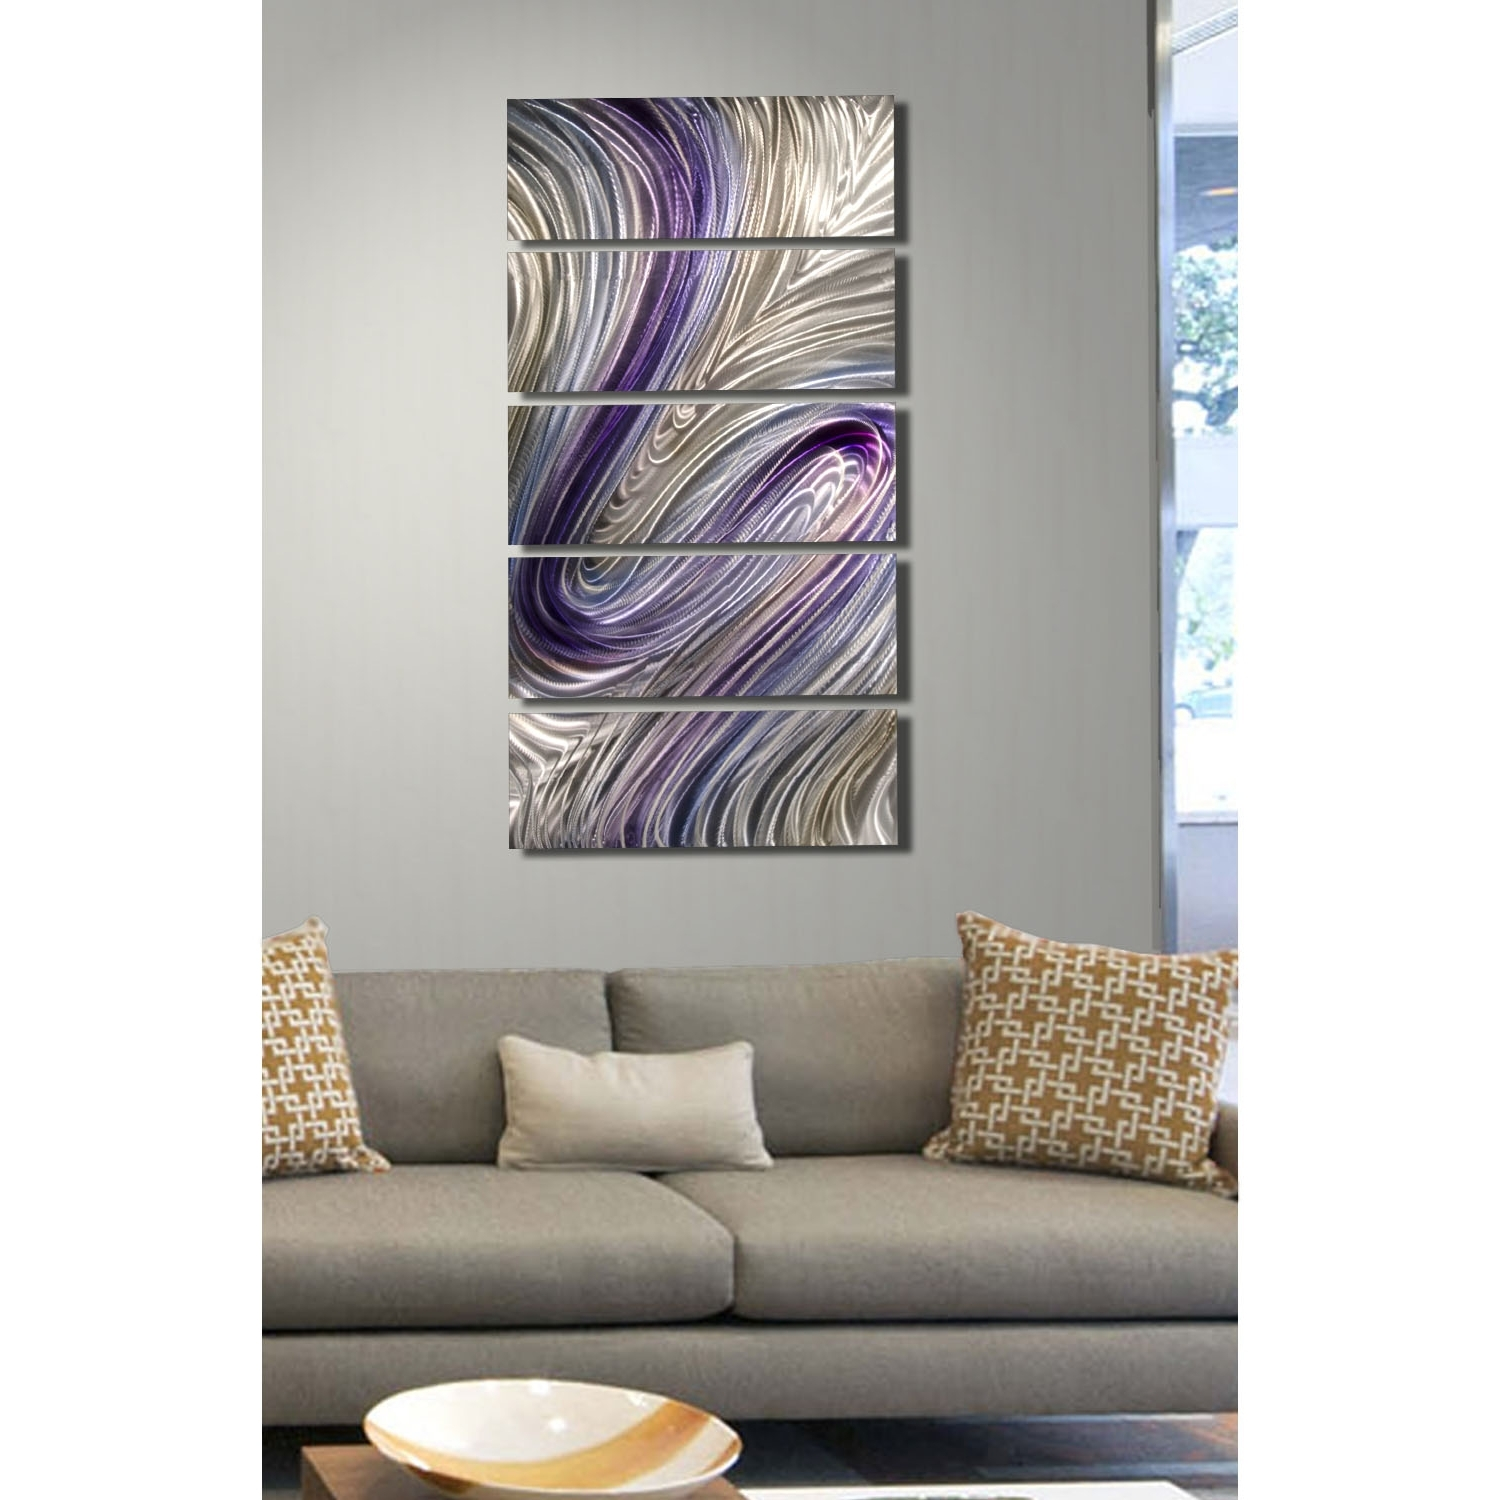 Best And Newest Silver And Gold Wall Art With Reverie – Purple, Silver And Gold Metal Wall Art – 5 Panel Wall (View 4 of 15)